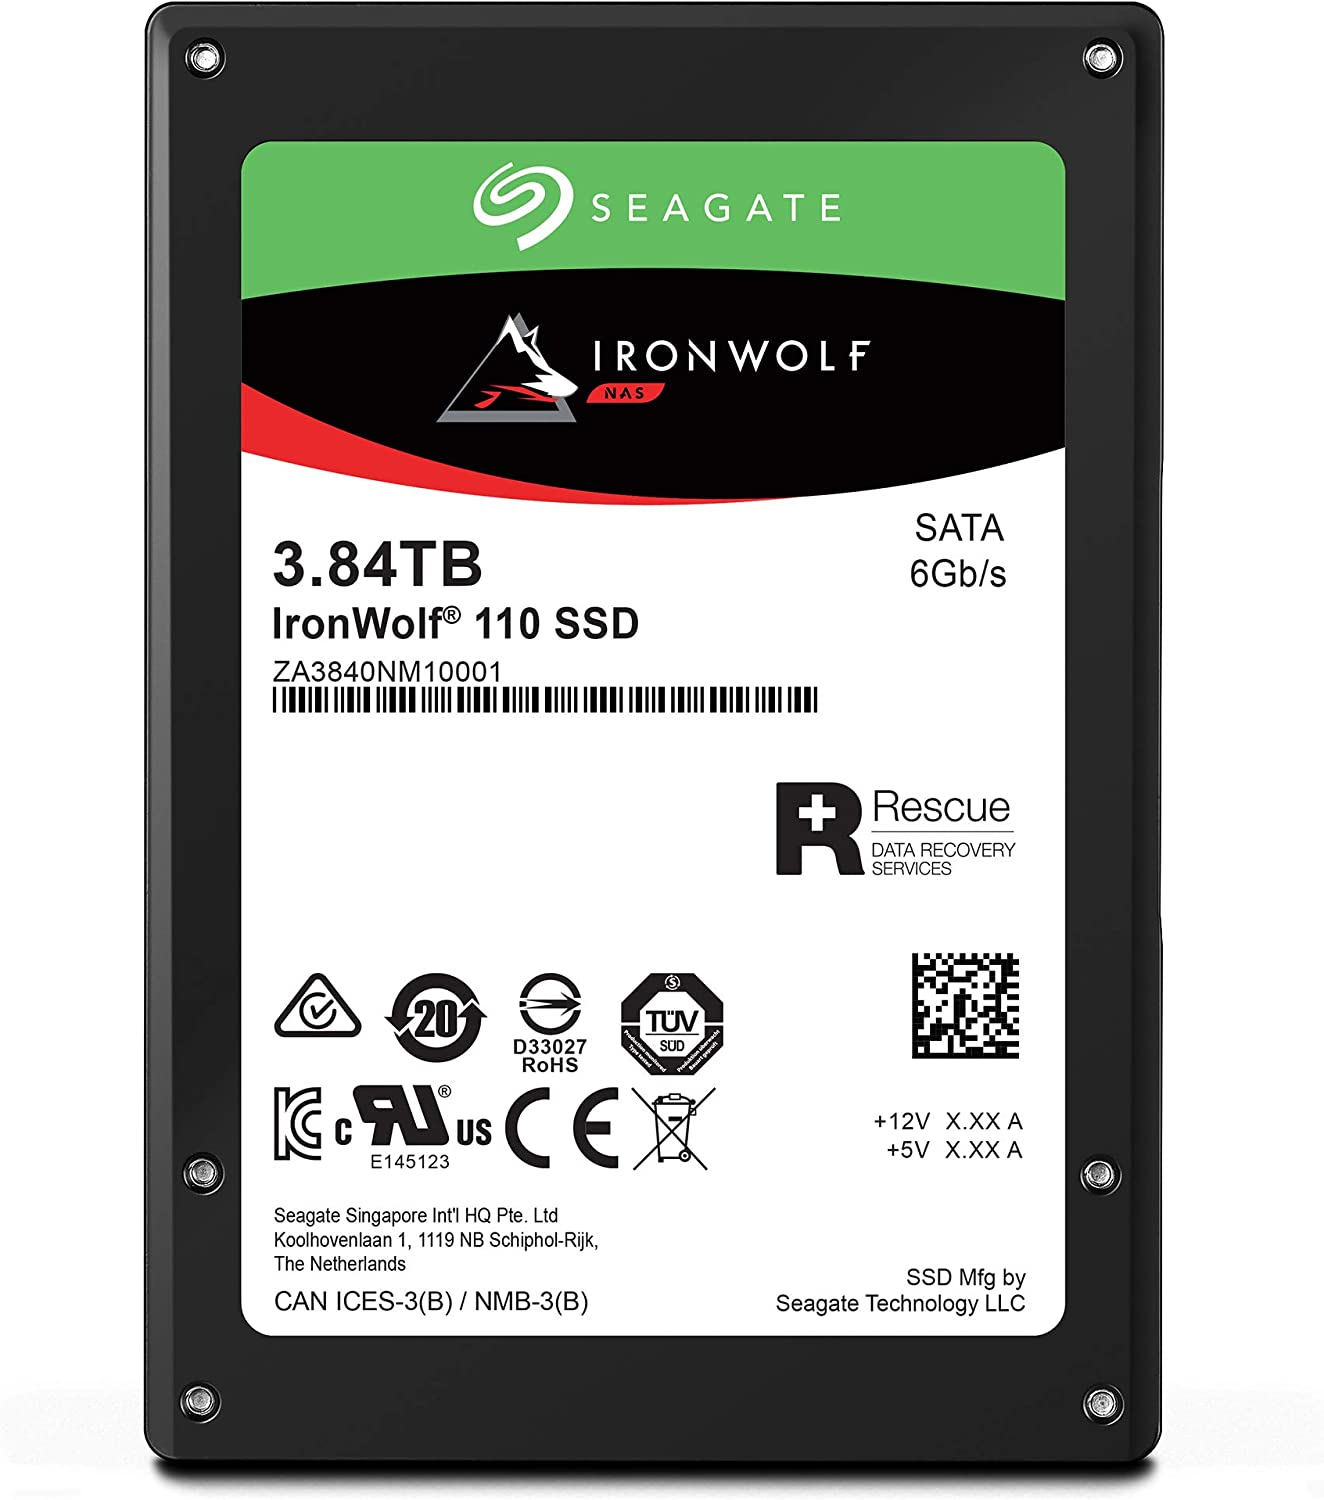 Seagate IronWolf 110 3.84TB NAS SSD Internal Solid State Drive – 2.5 inch SATA for Multibay RAID System Network Attached Storage, 2 Year Data Recovery (ZA3840NM10001)